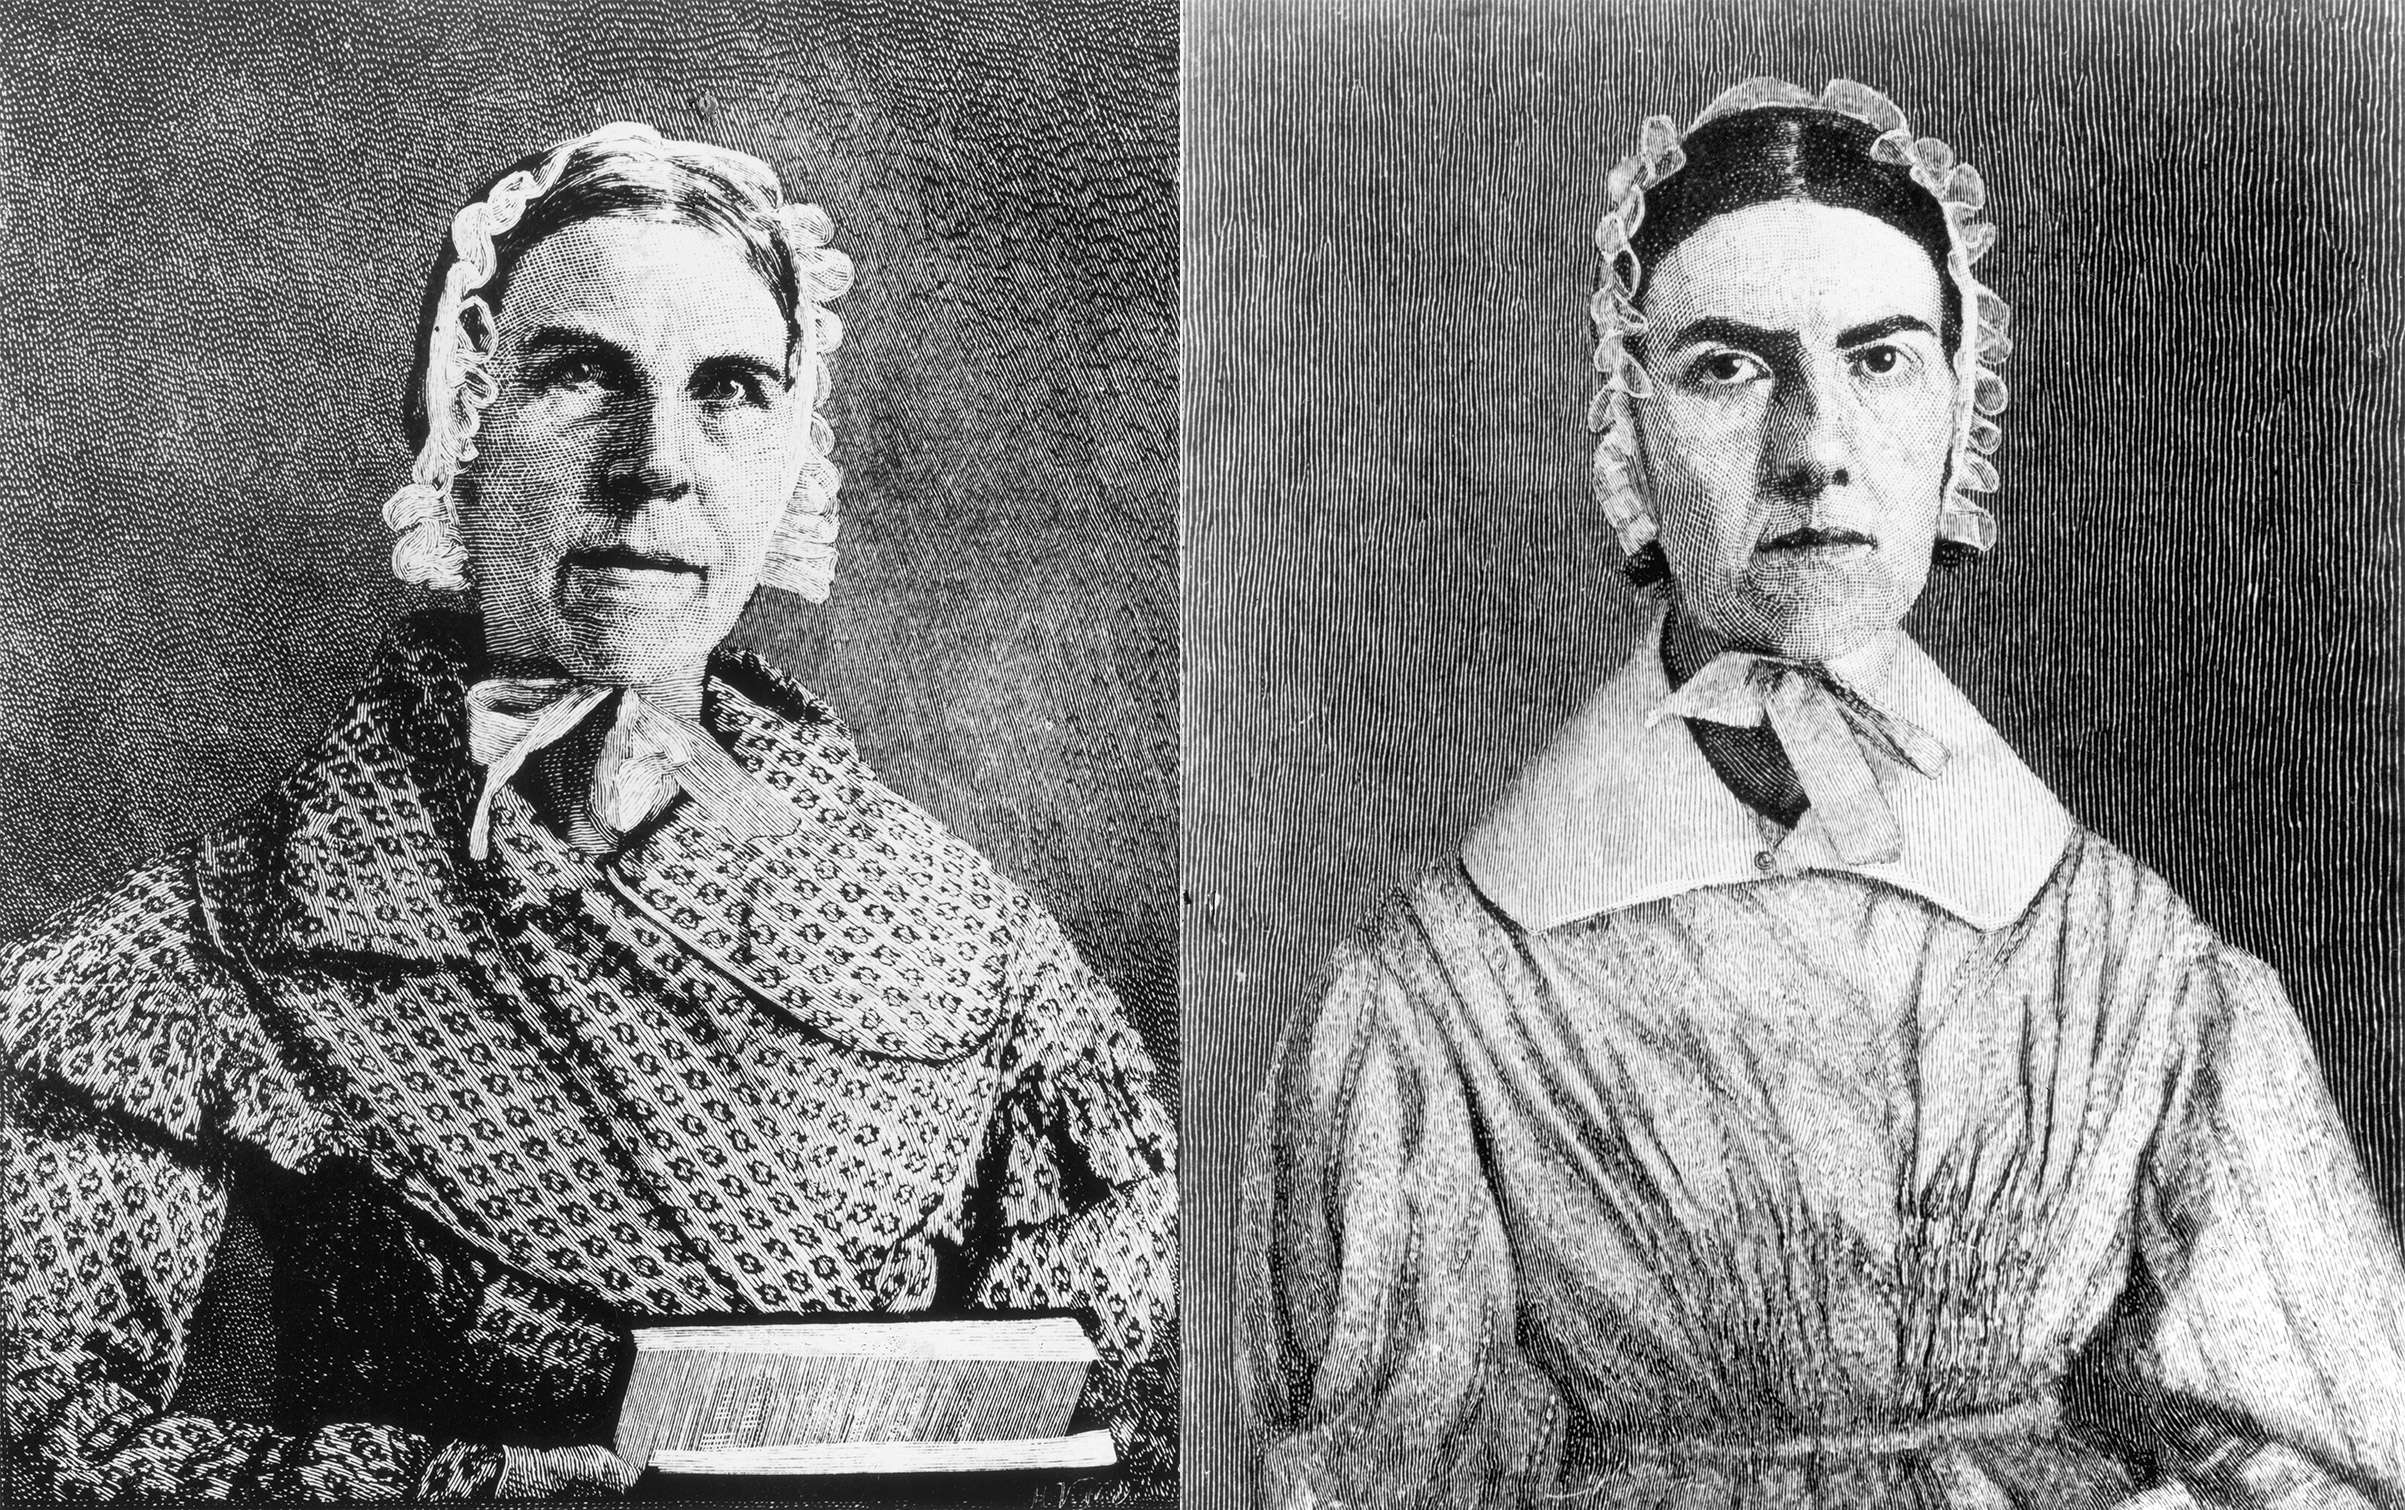 Abolitionists and women's rights activists Sarah Grimké (L) and Angelina Grimké (R). Circa 1820s.